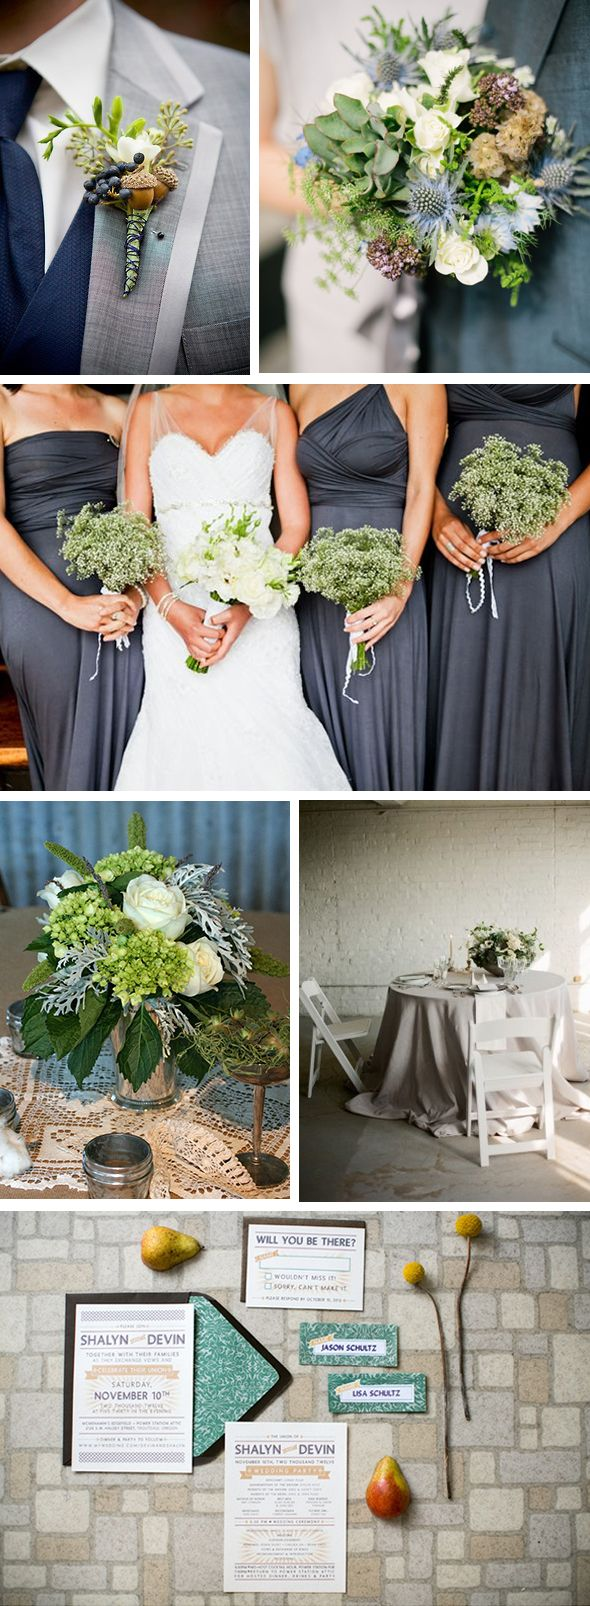 i thought it was blue, but it's a really pretty color -   grey and green weddings Autumn Destination Wedding Ideas